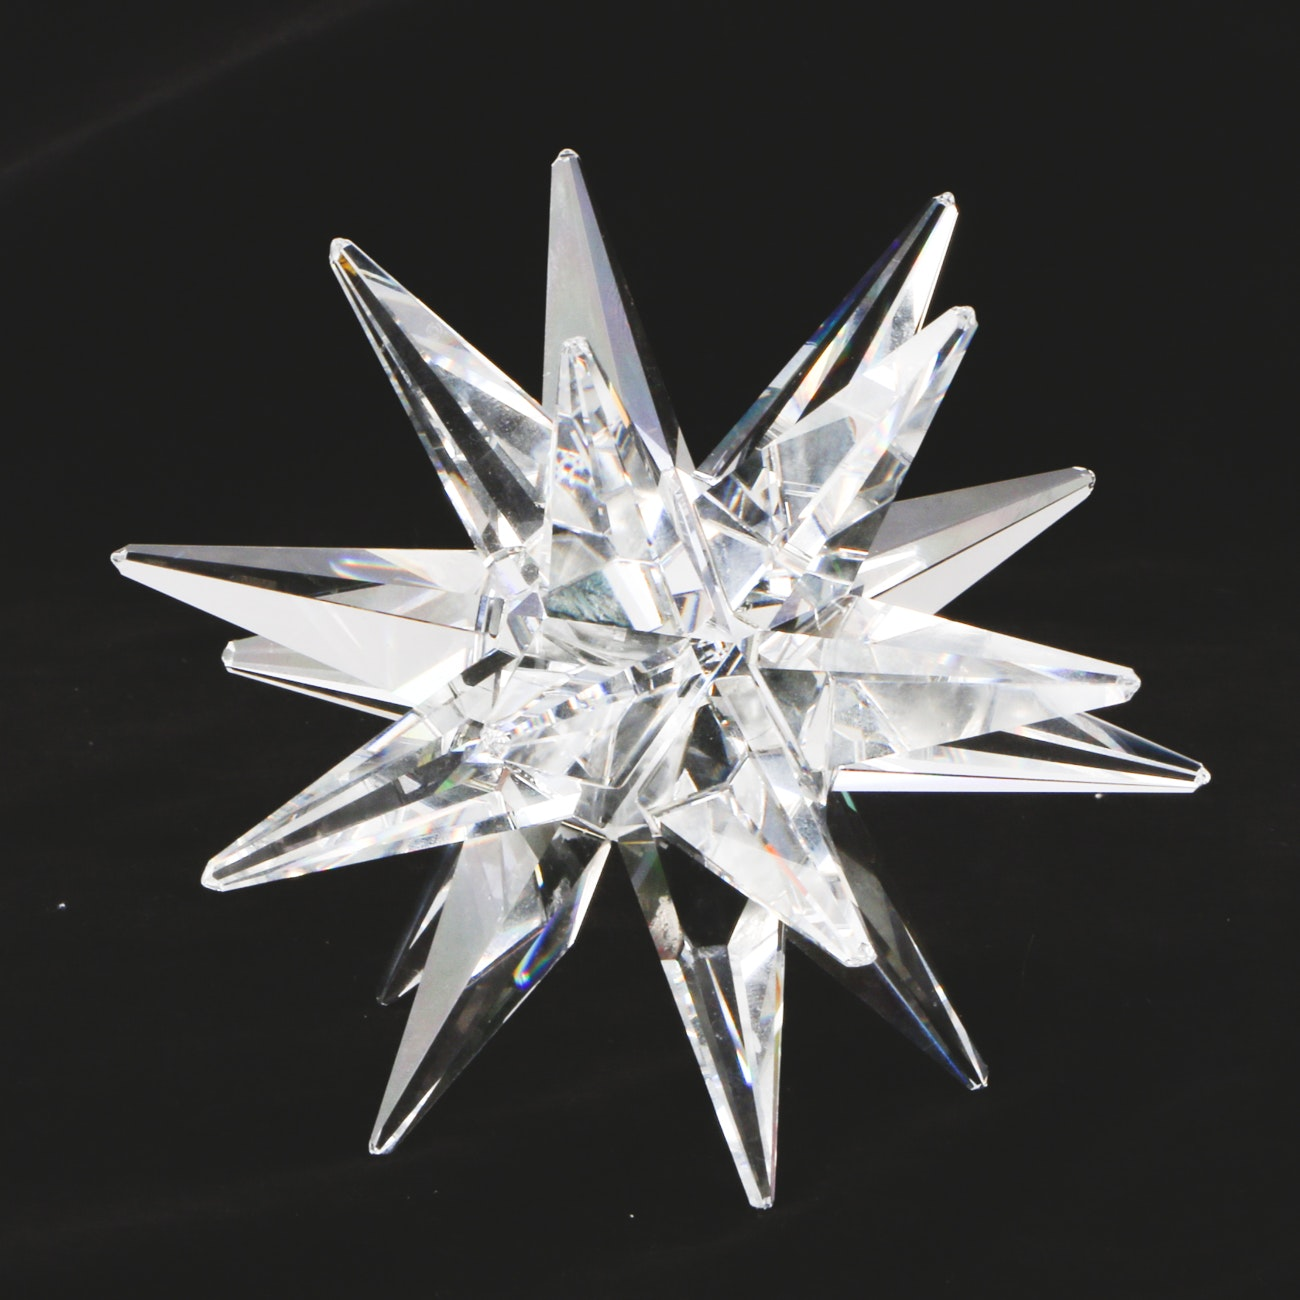 Marked Swarovski Austrian Made Crystal Paperweight